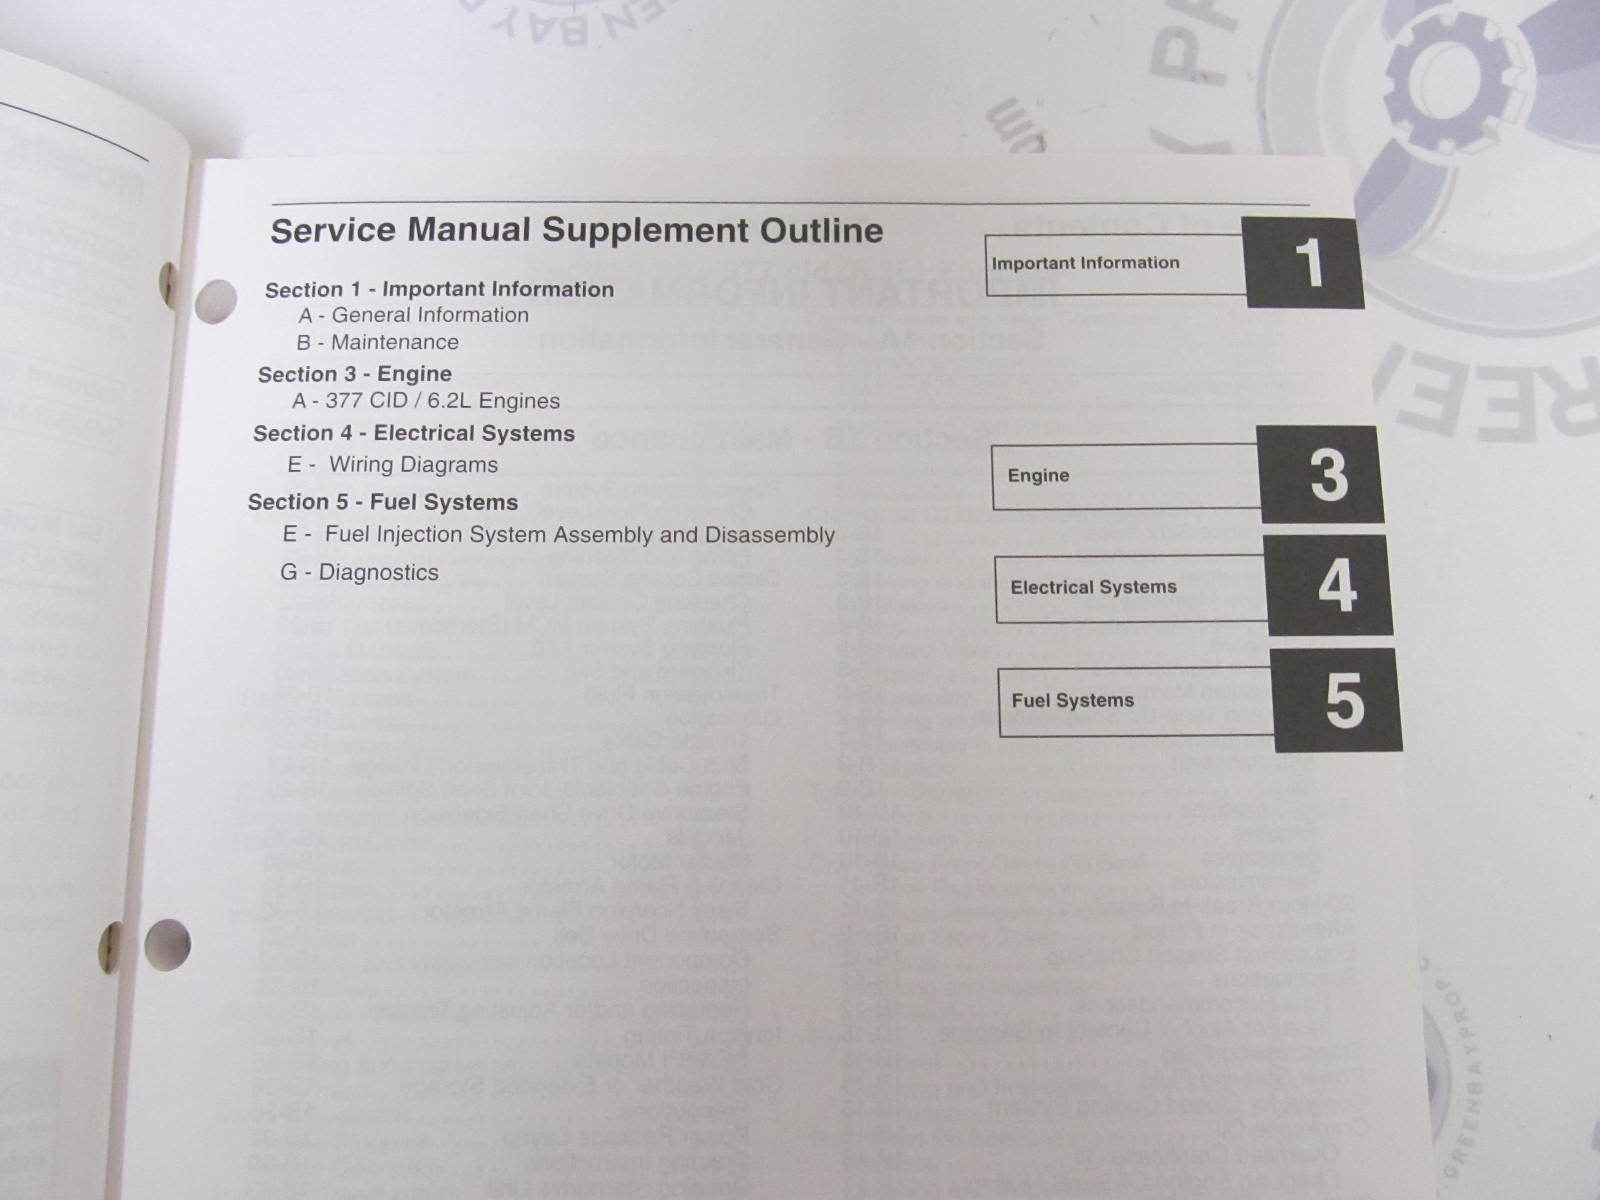 90 861327000 mercruiser service manual supplement to number 24 gm rh greenbayprop com mercruiser service manual 23 mercruiser service manual 23